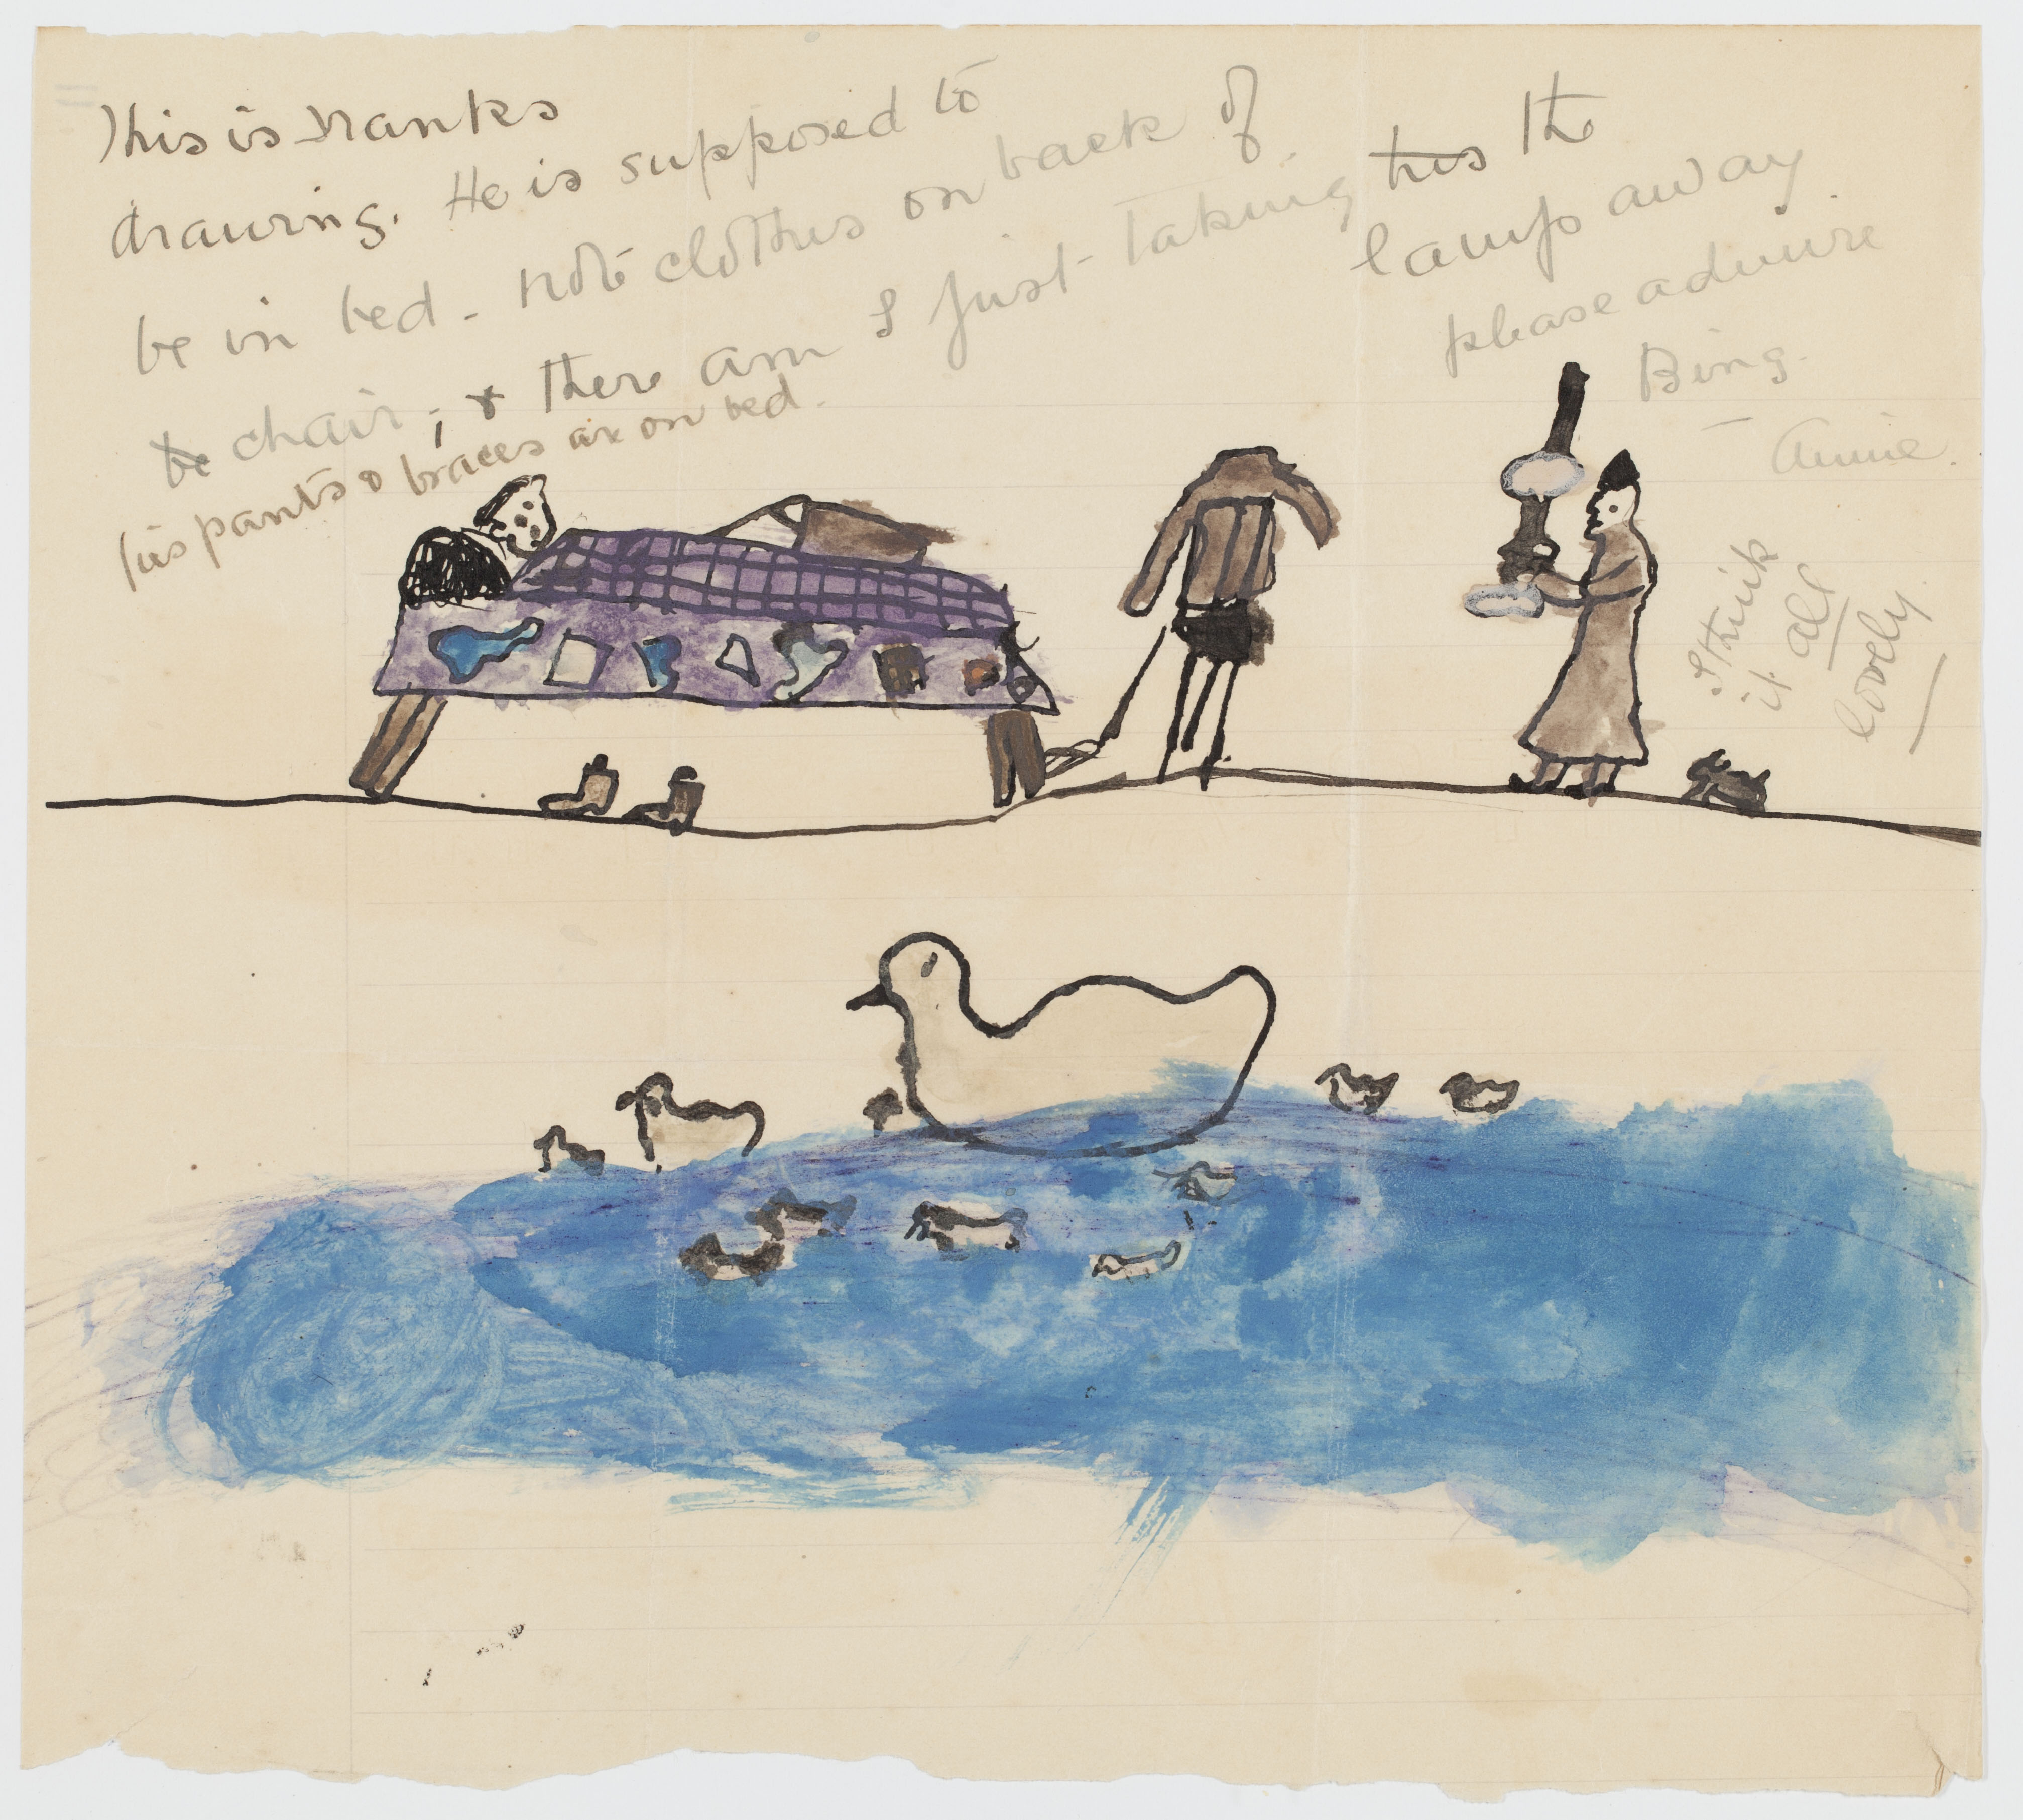 A drawing depicting a child's bedtime and ducklings with mother duck on a pond.